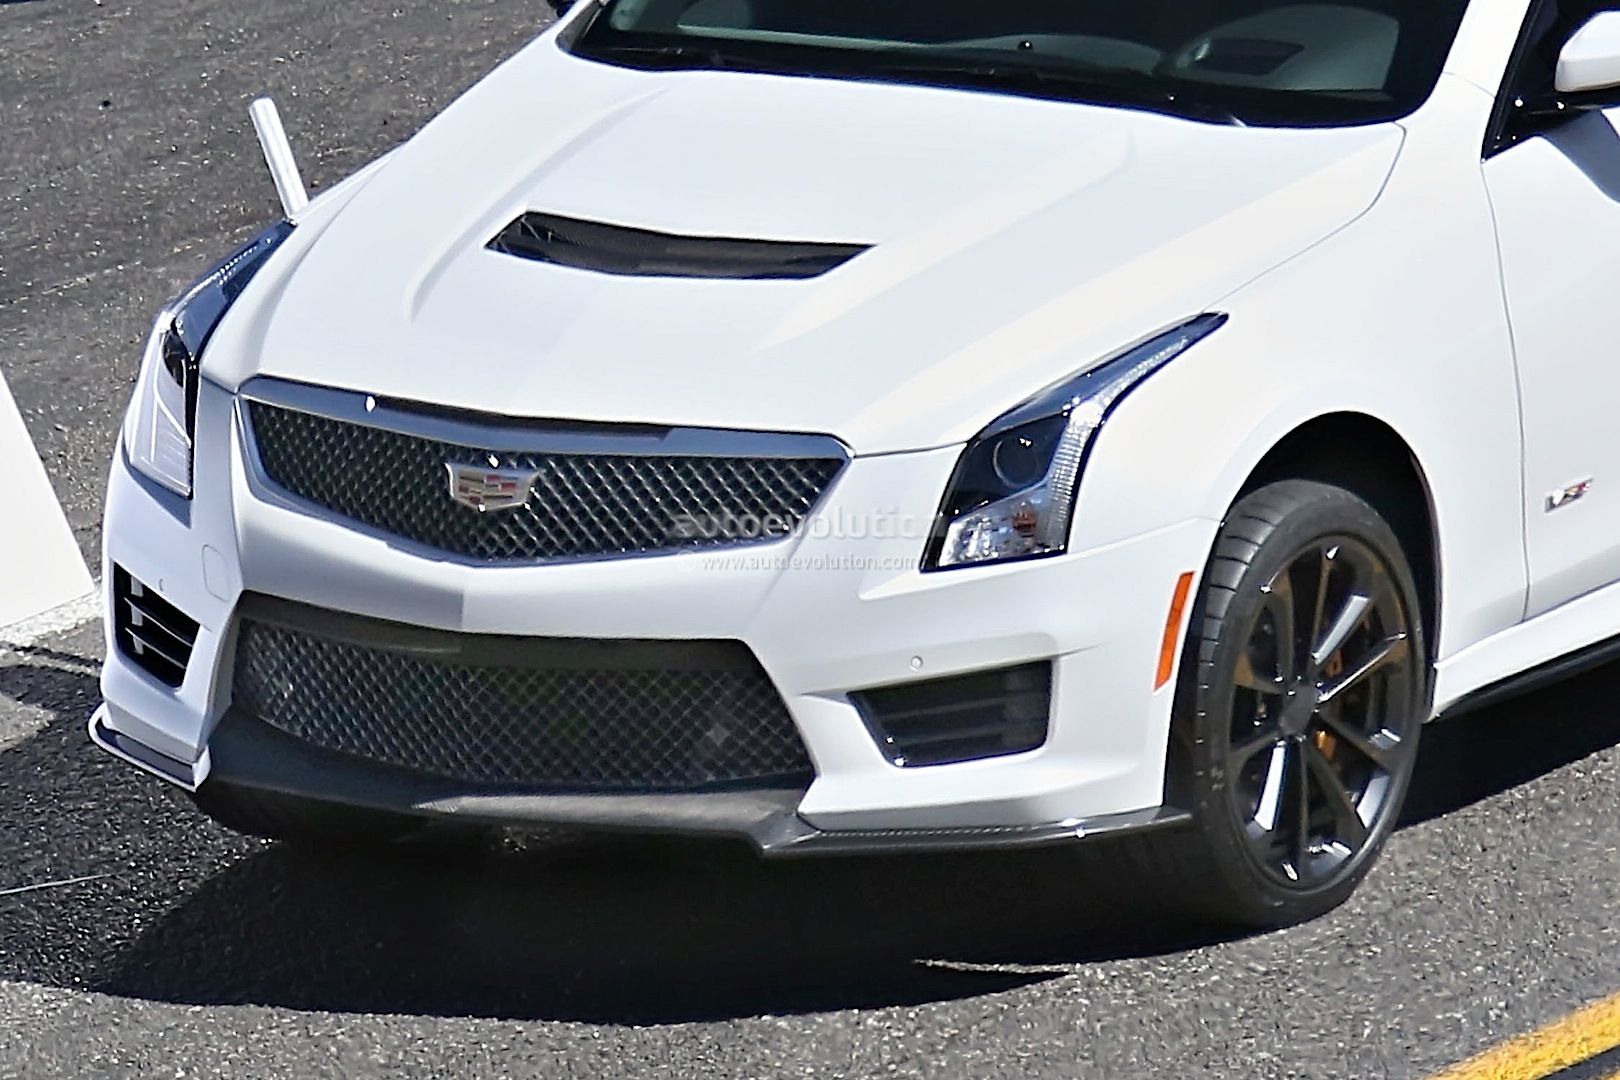 new 2015 cadillac ats v spied uncamouflaged in coupe format autoevolution. Black Bedroom Furniture Sets. Home Design Ideas